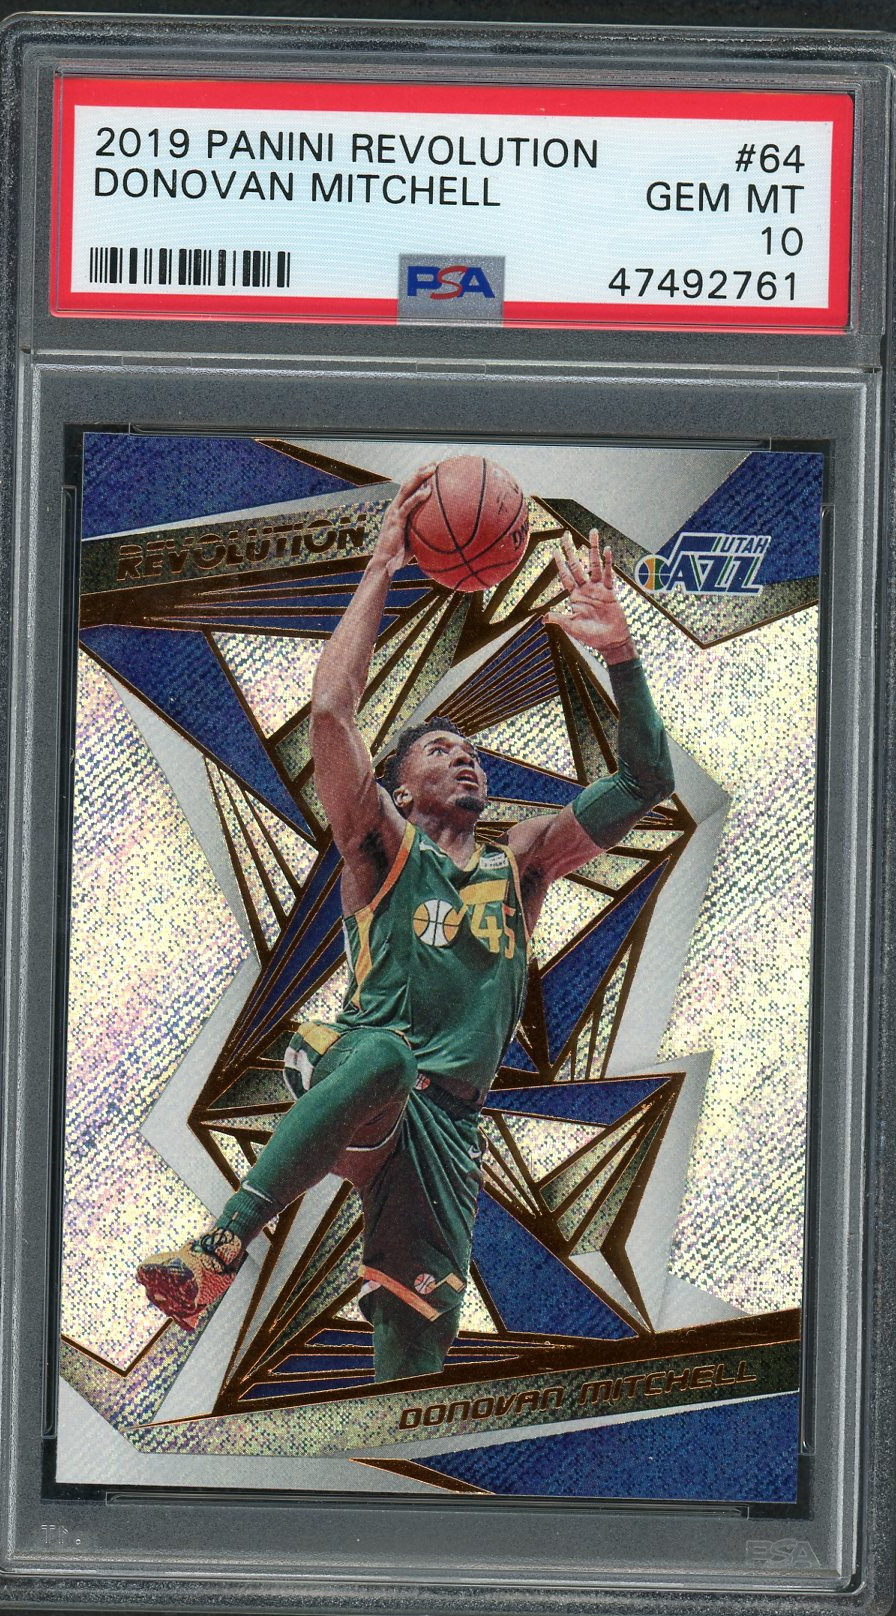 Donovan Mitchell Utah Jazz 2019 Panini Revolution Basketball Card #64 Graded PSA 10 GEM MINT Donovan Mitchell Utah Jazz 2019 Panini Revolution Basketball Card #64 Graded PSA 10 GEM MINT